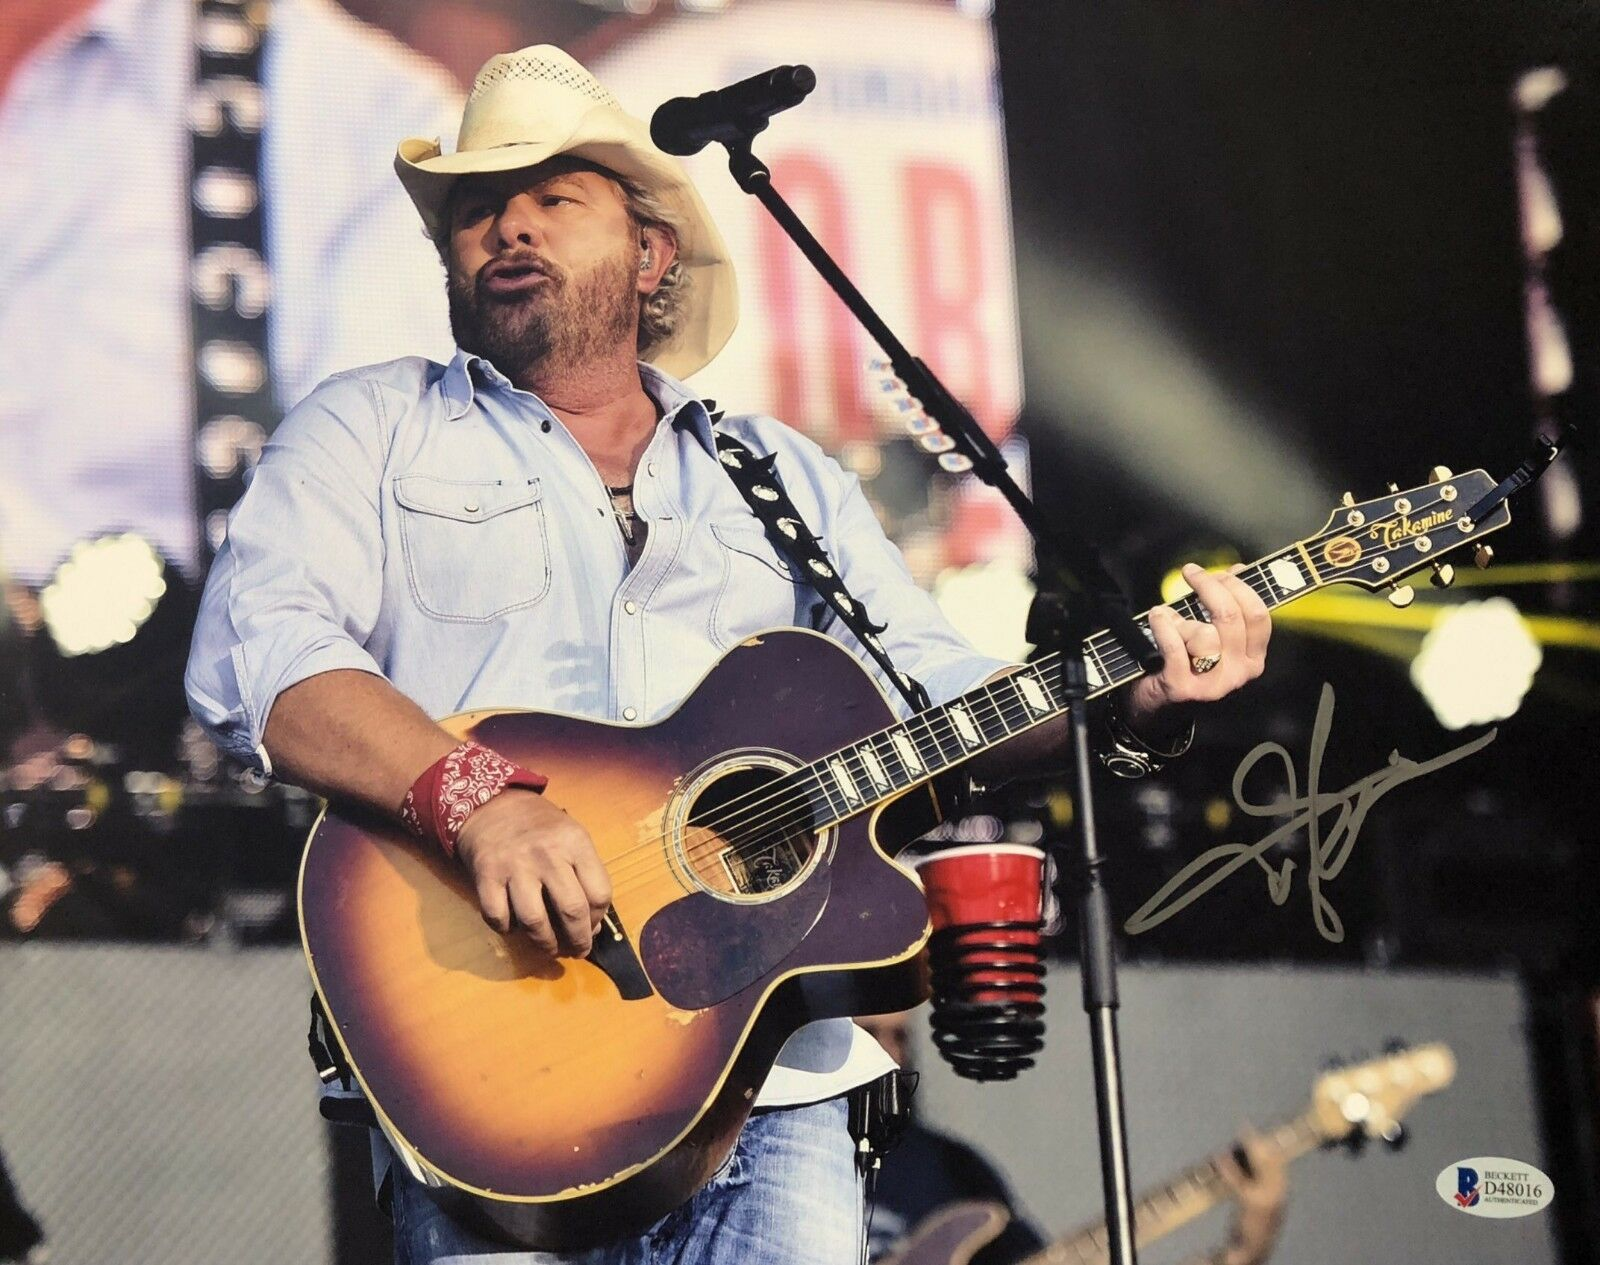 Toby Keith Signed 11x14 Photo *Country Musician *Red Solo Cup BAS Beckett D48016